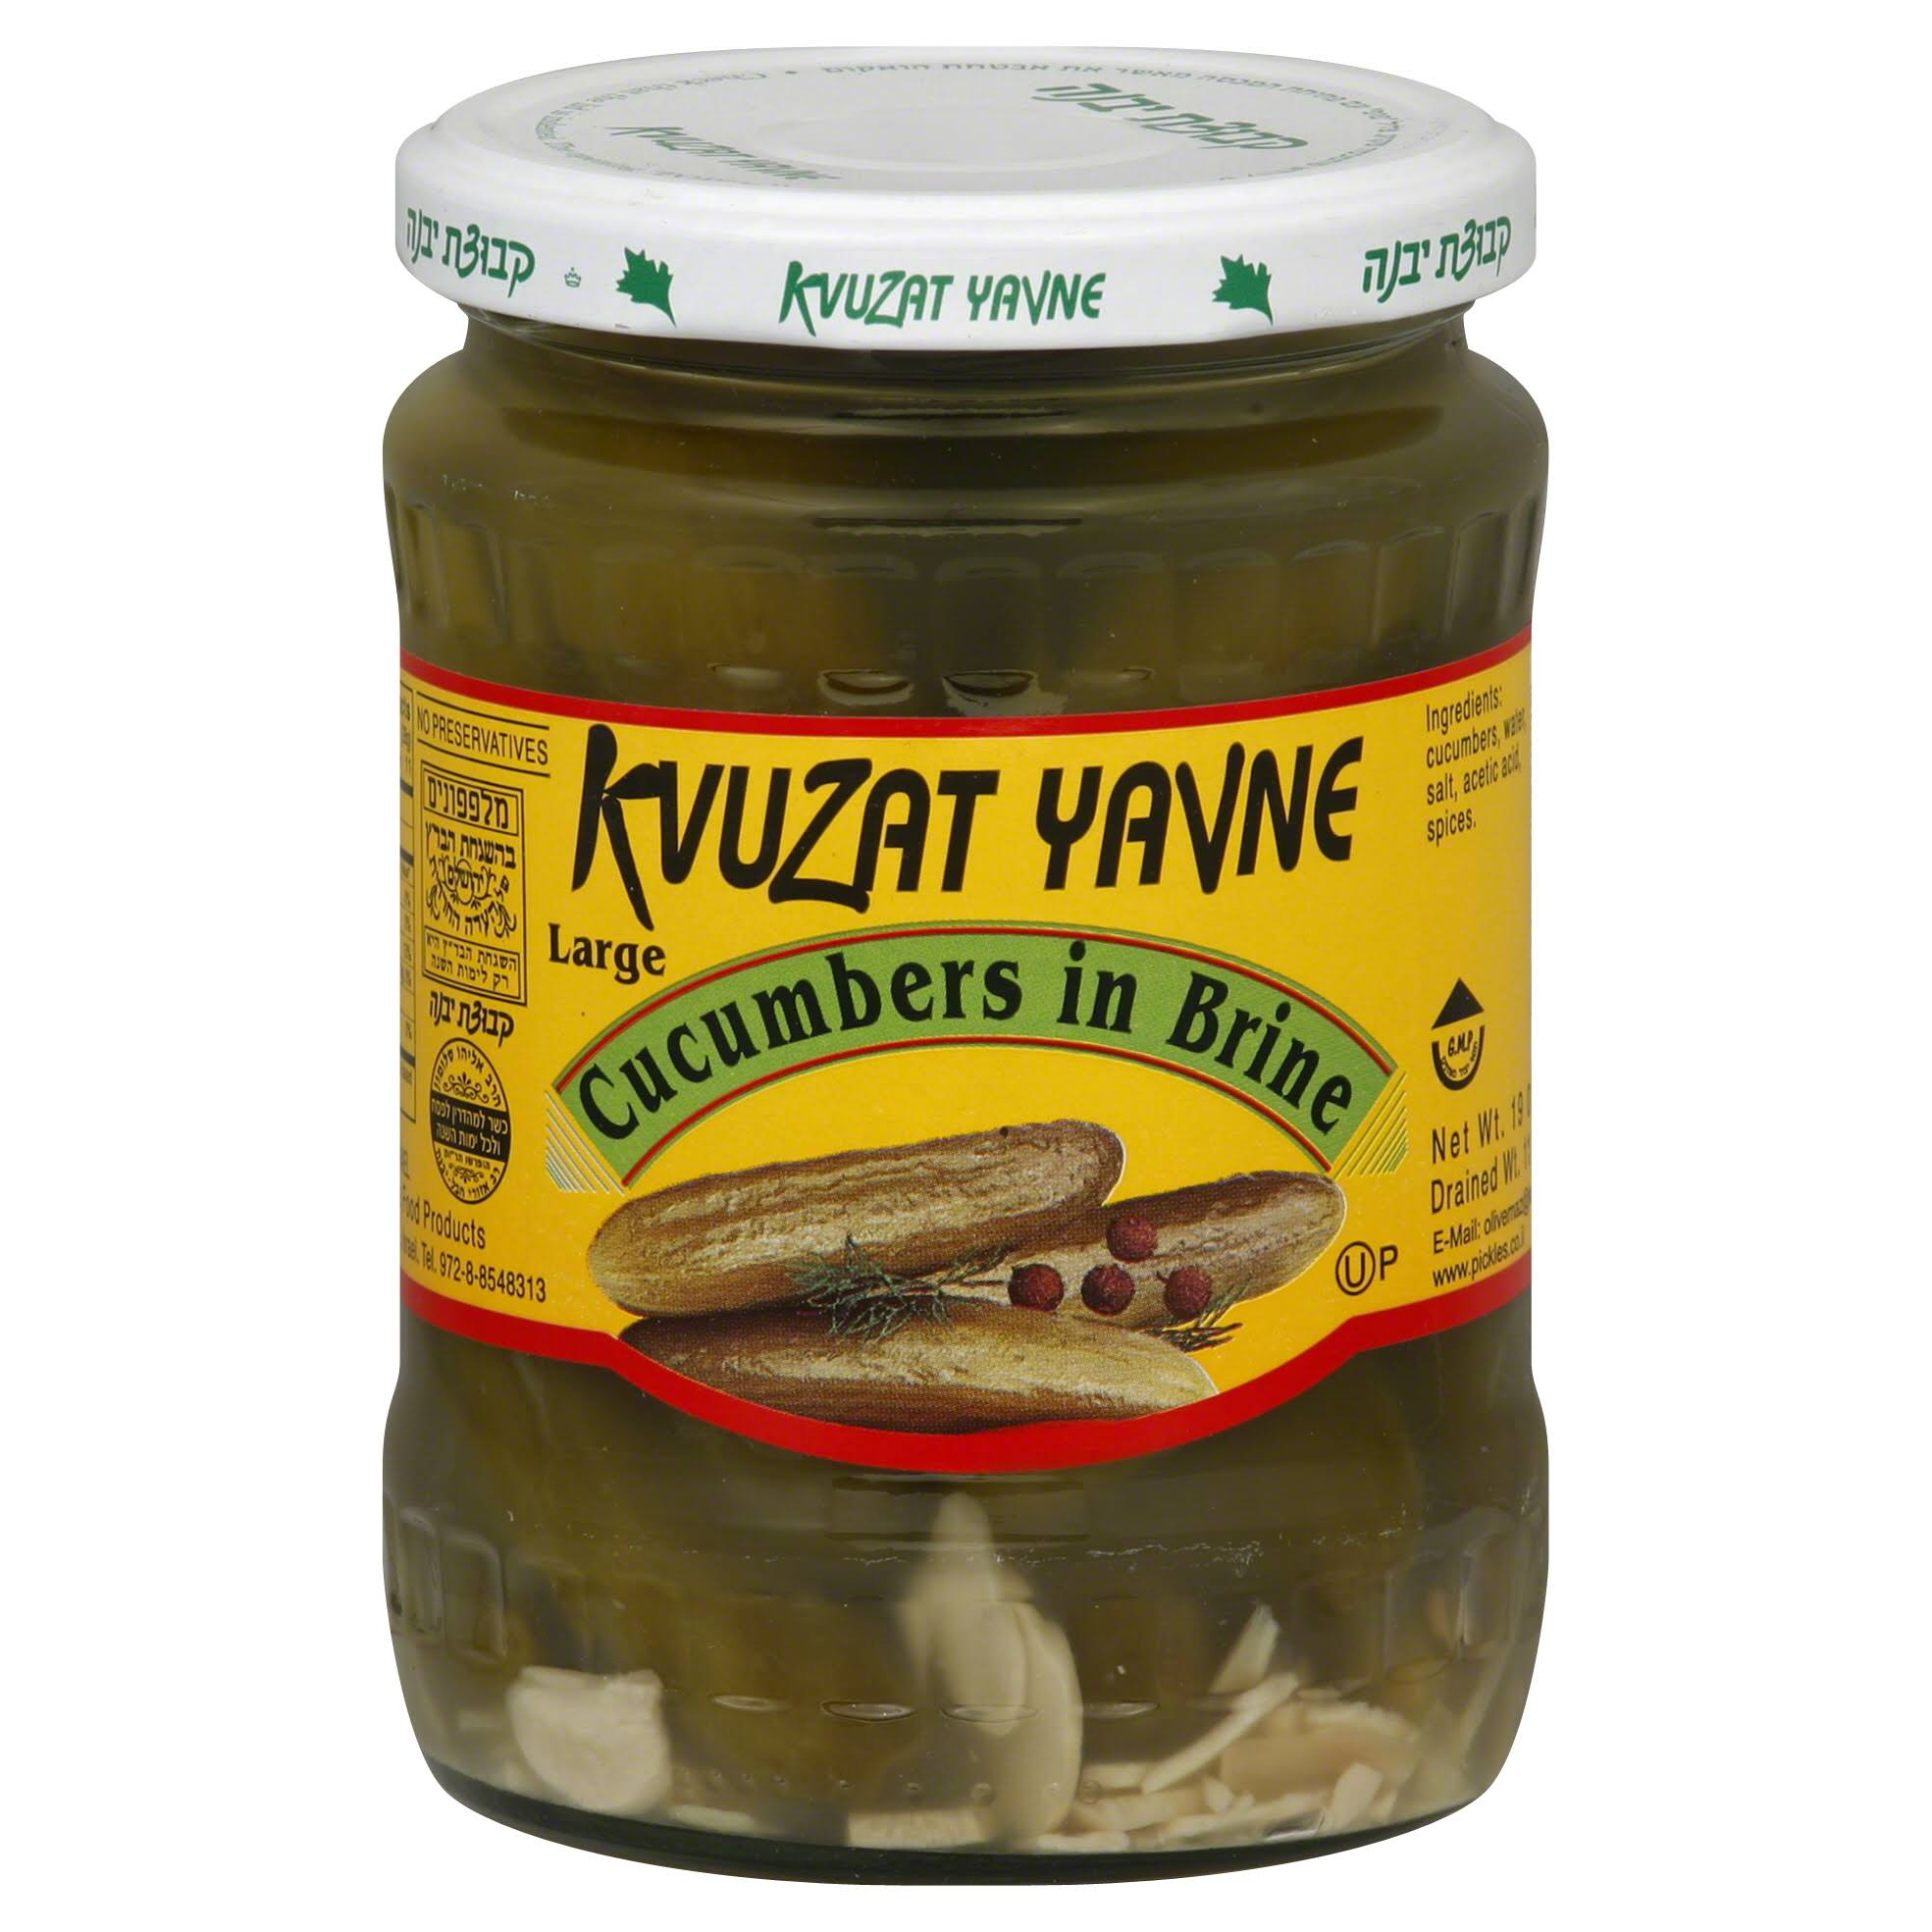 Kvuzat Yavne Cucumbers in Brine, Large - 19 oz